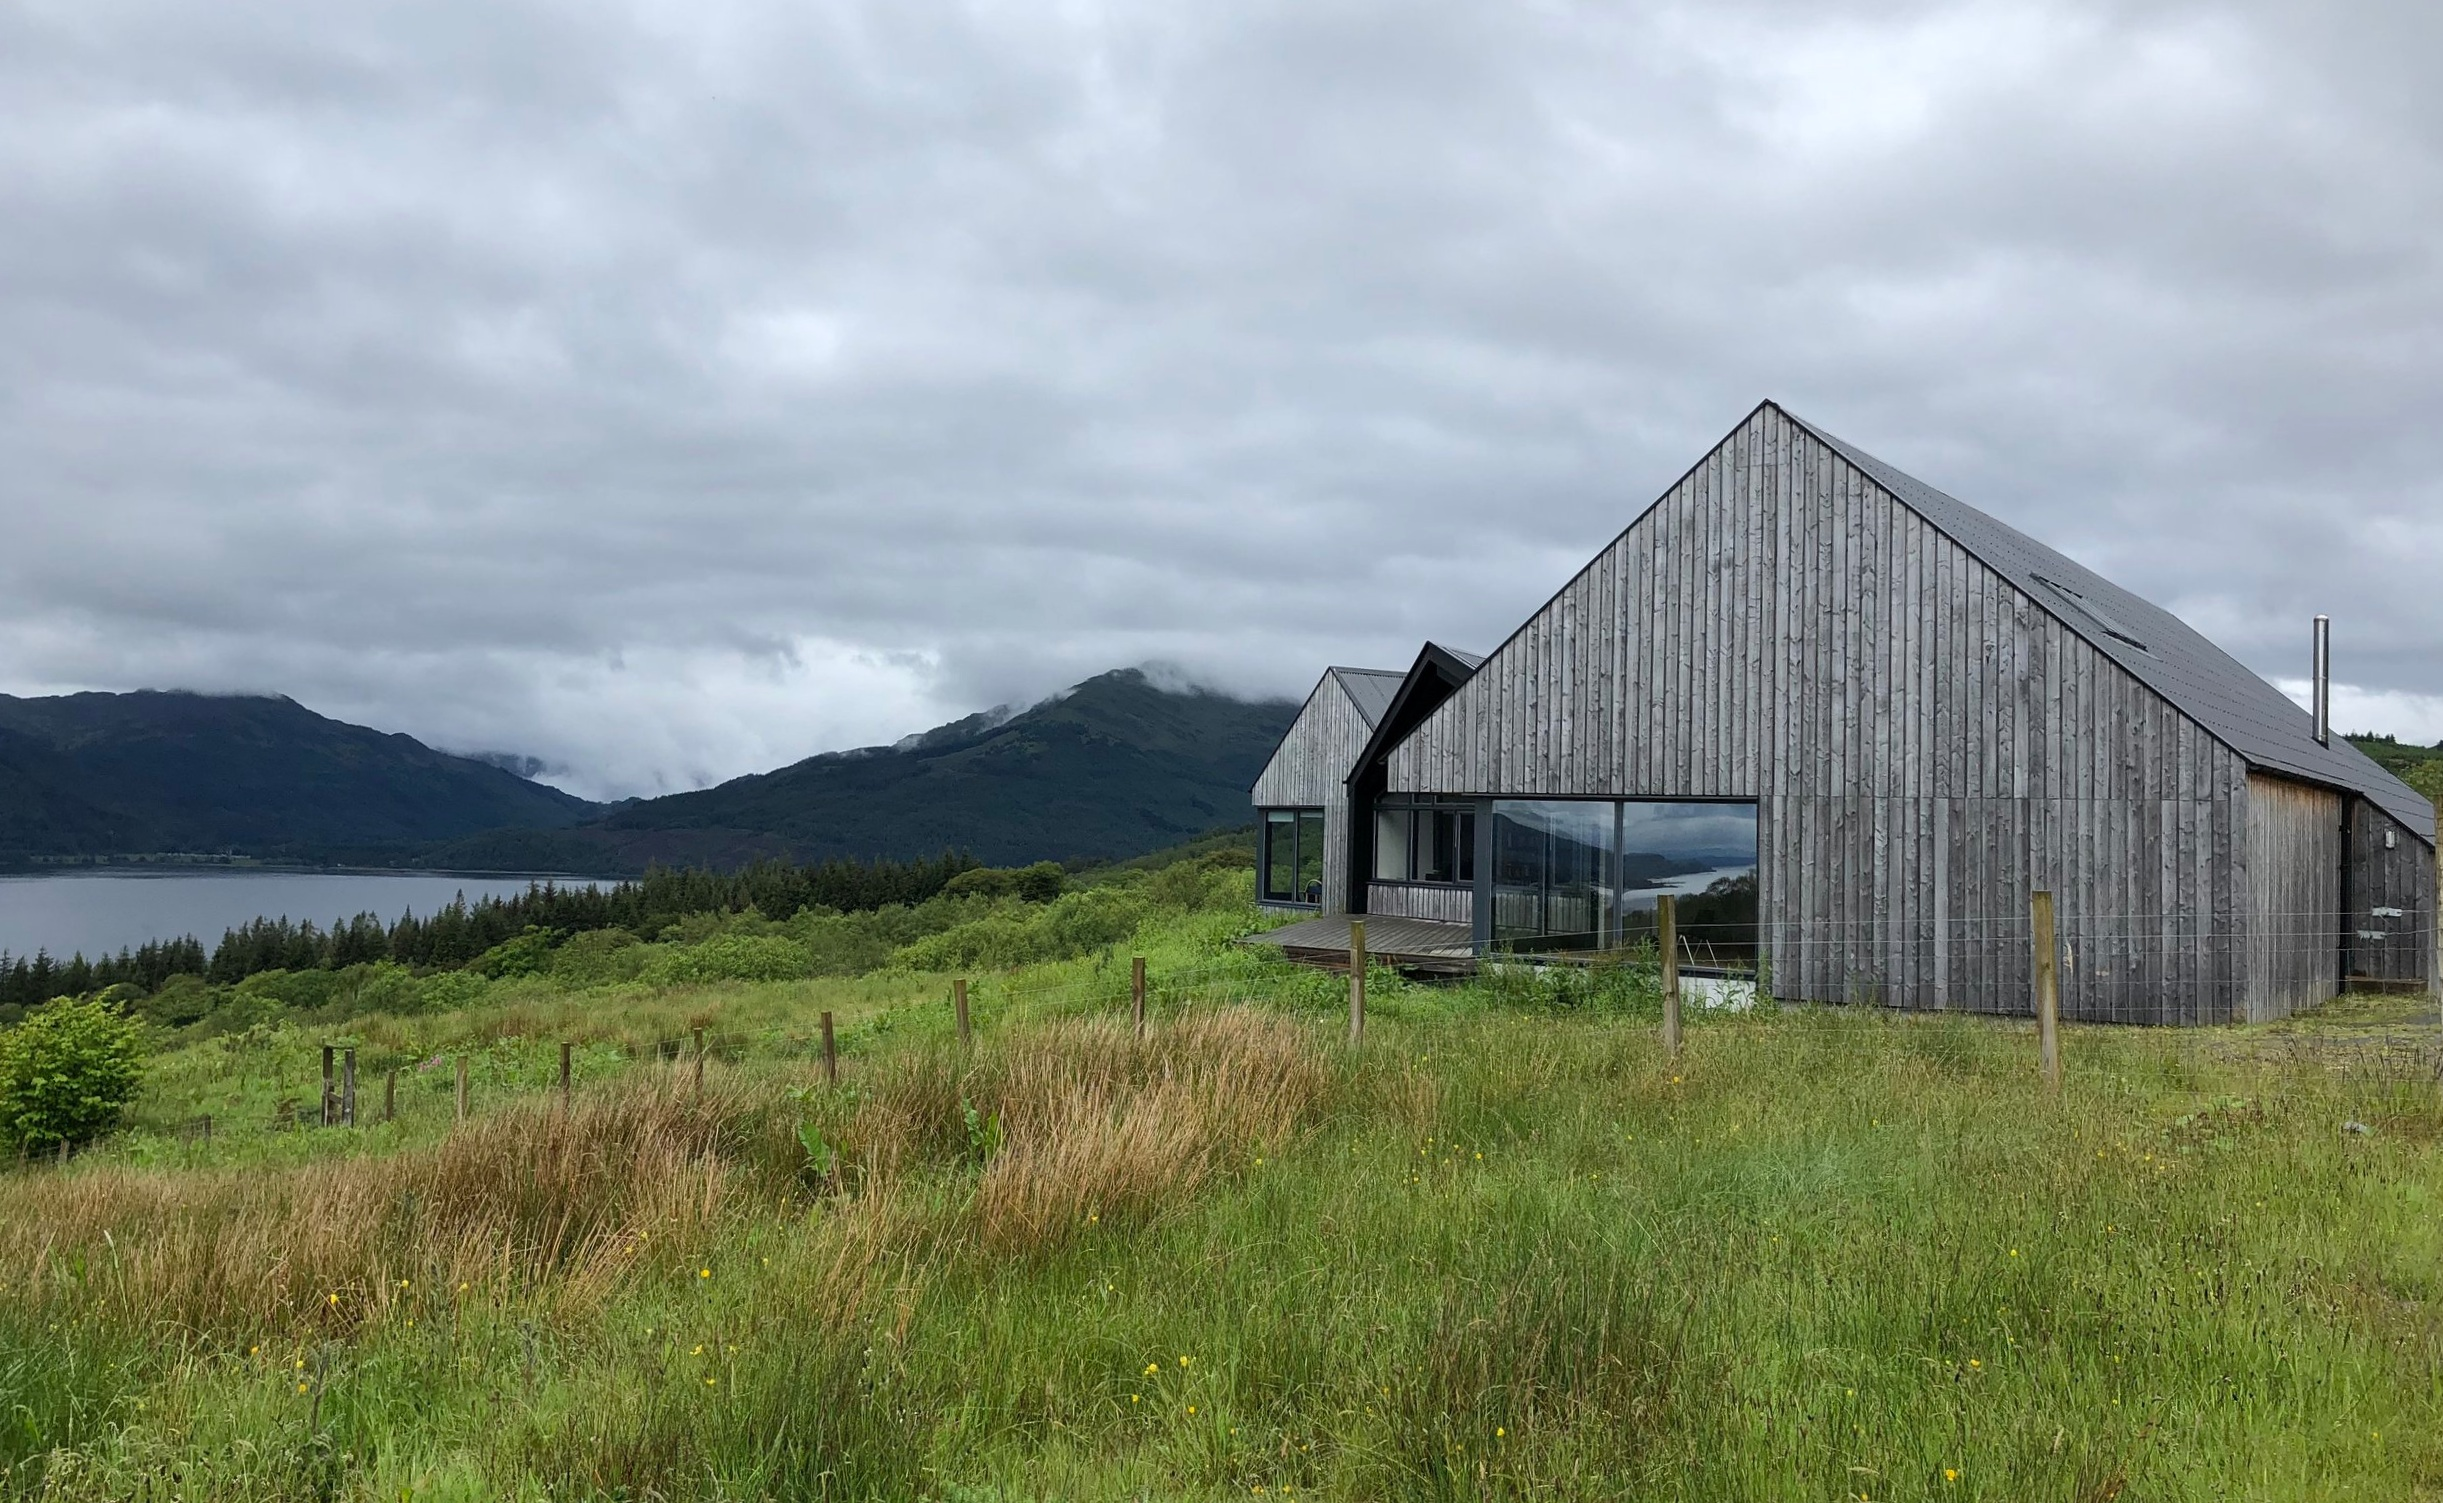 The Artist's Center at Cove Park, overlooking Loch Long, Scotland.